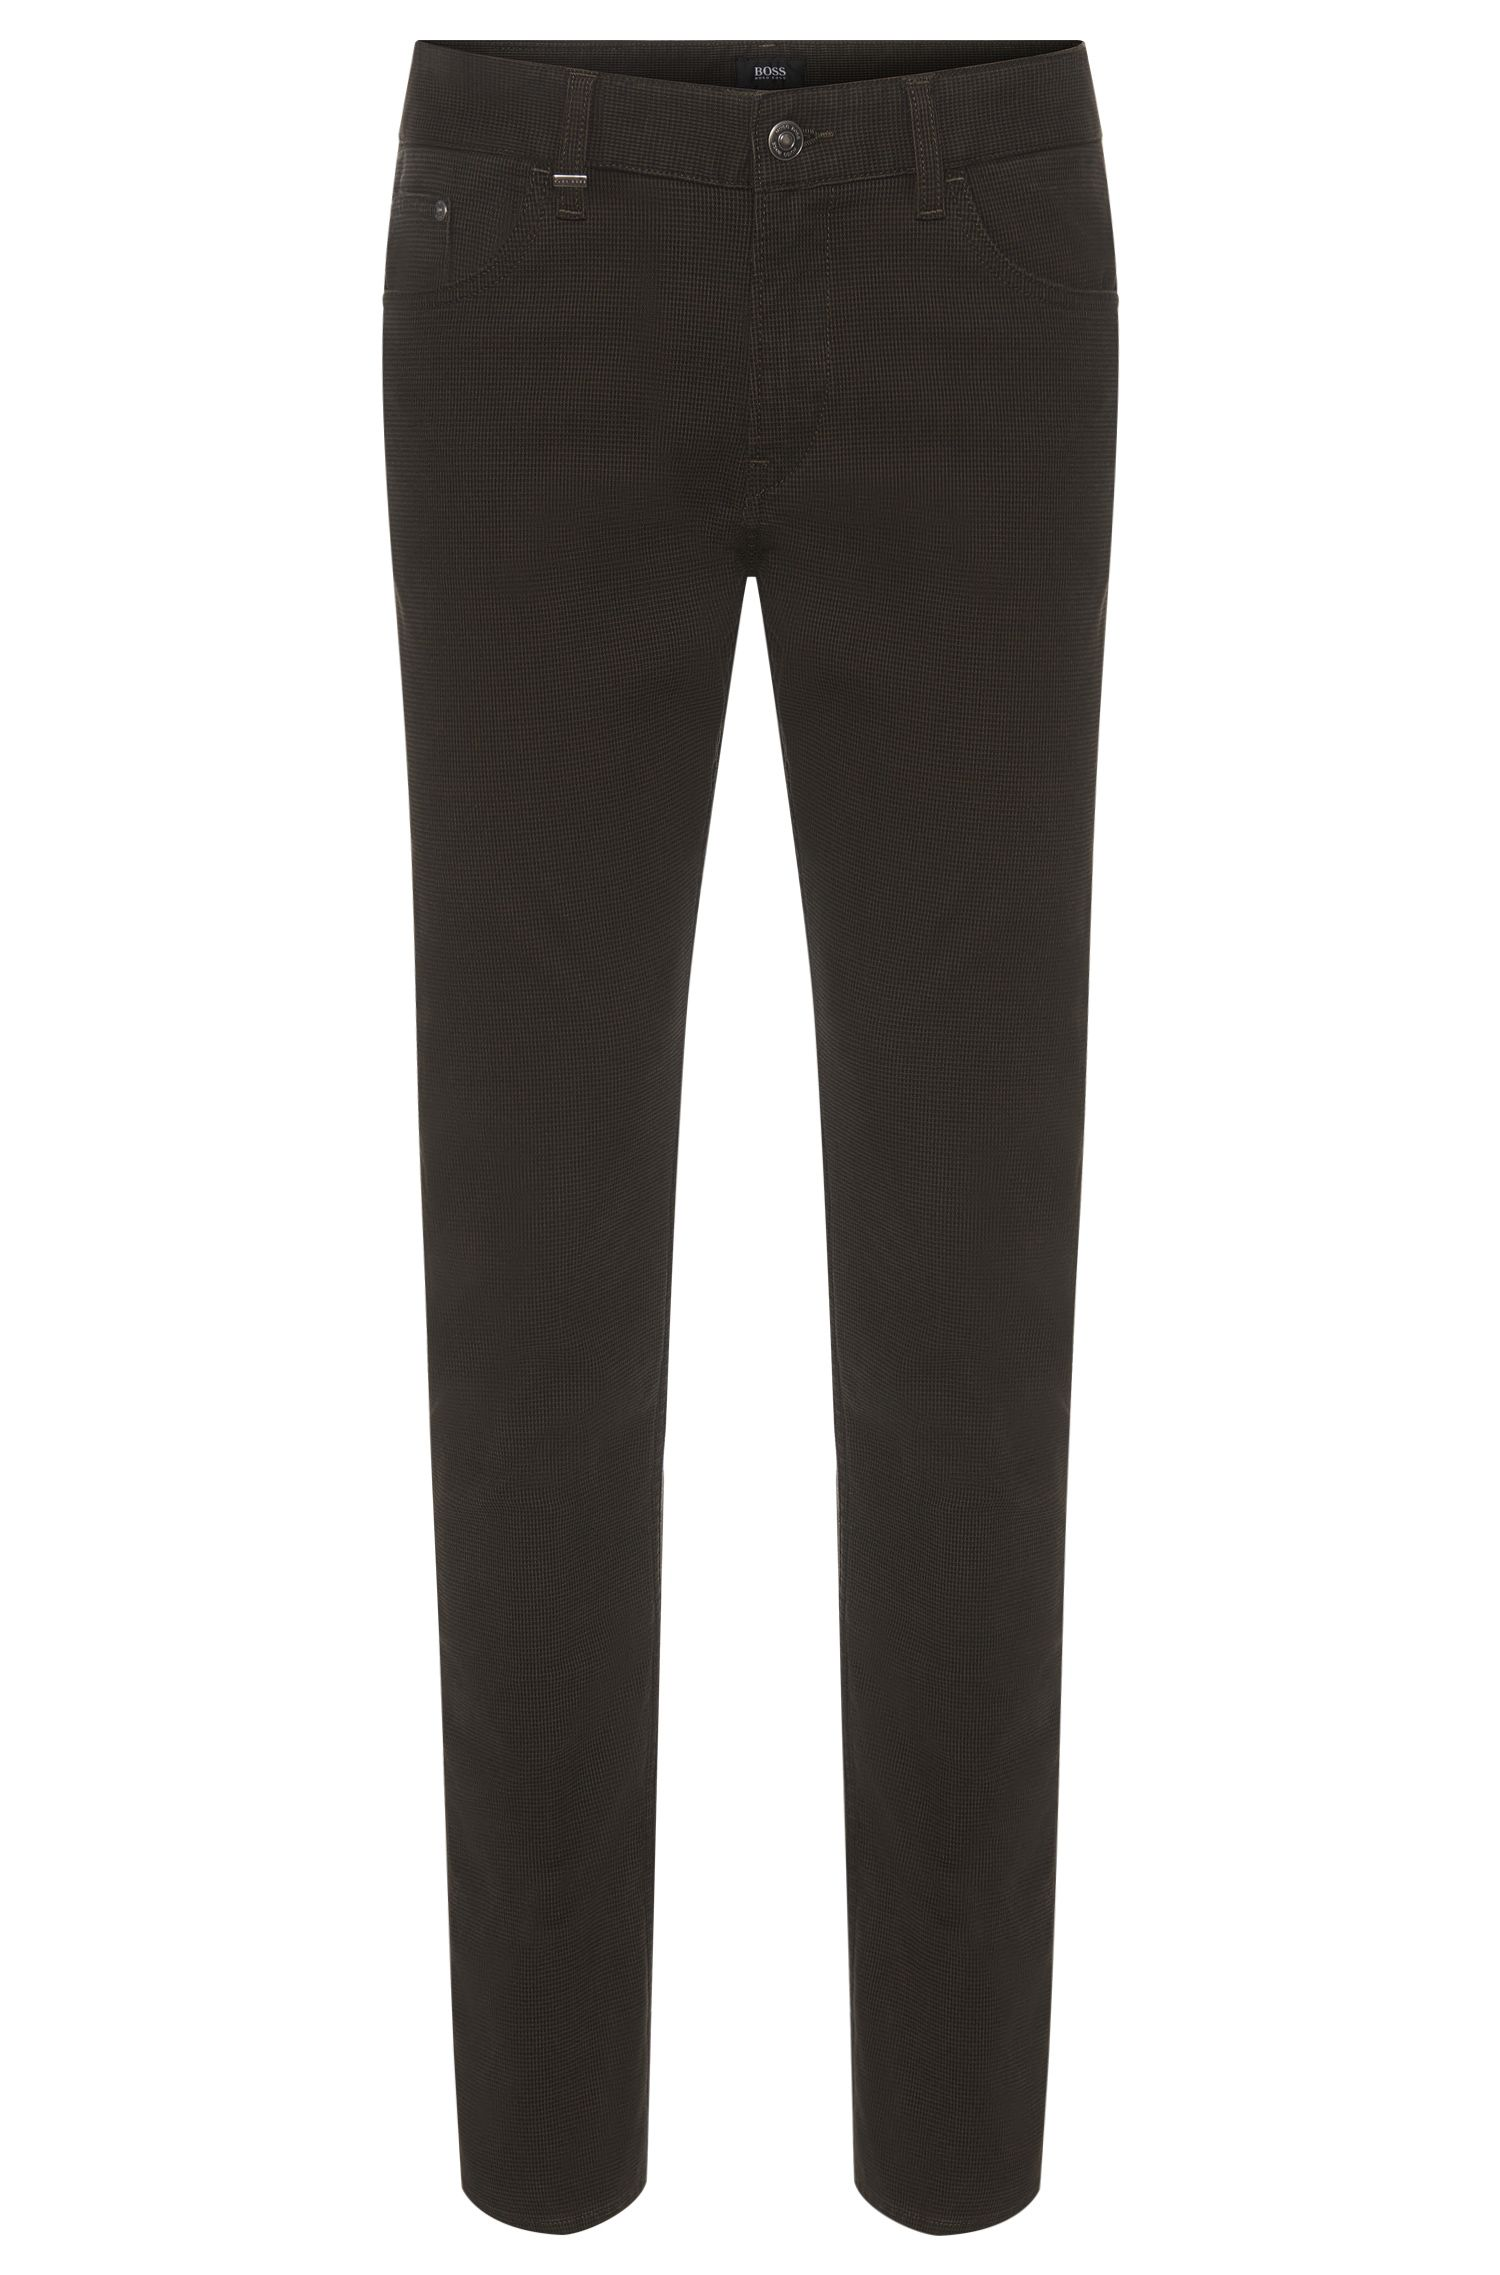 'Delaware' | Slim Fit, 10.5 oz Stretch Cotton Textured Trousers